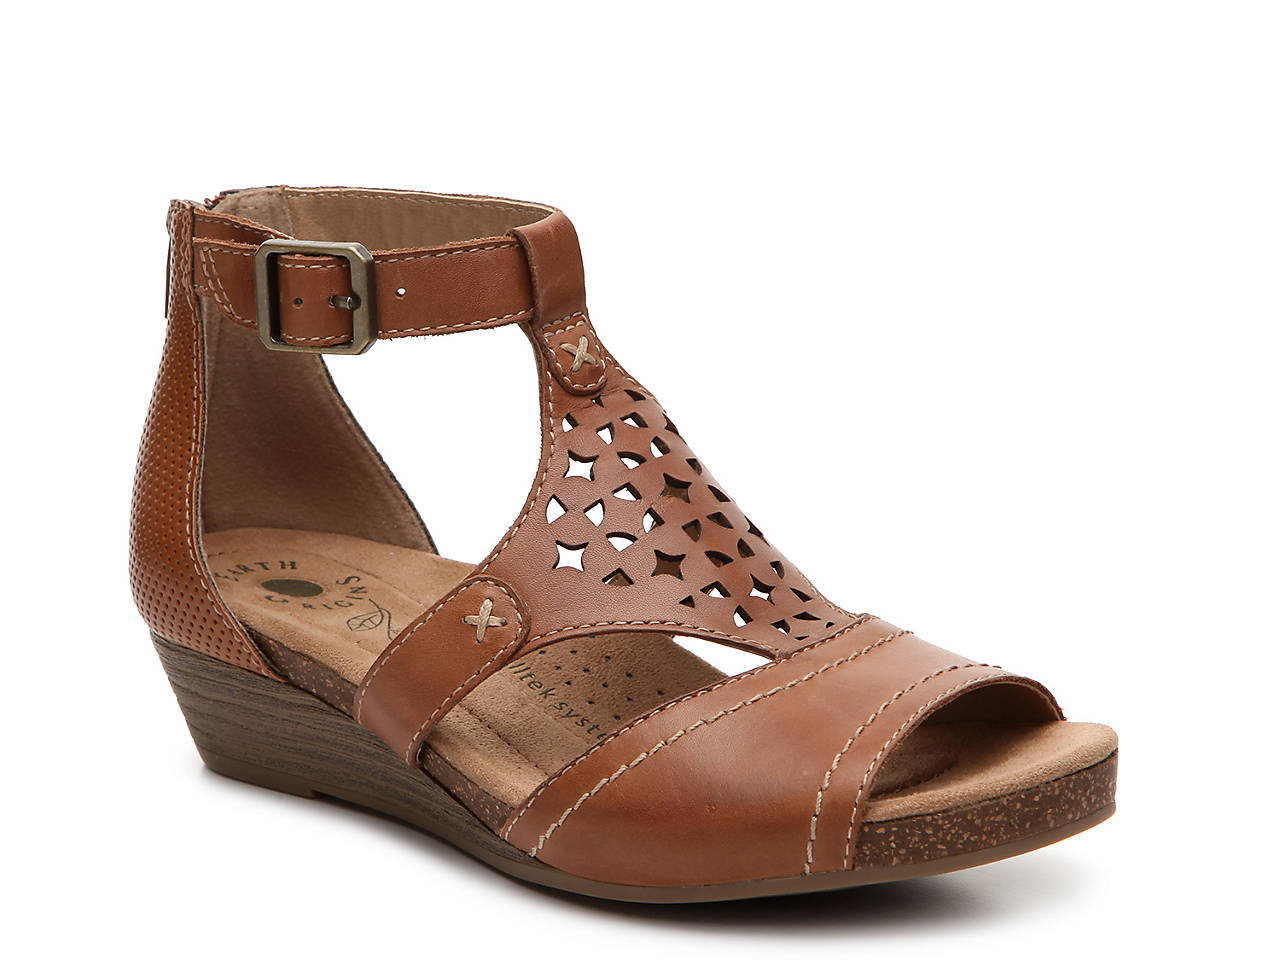 ae03f2dcc34 Earth Origins Hermia Wedge Sandal Women s Shoes